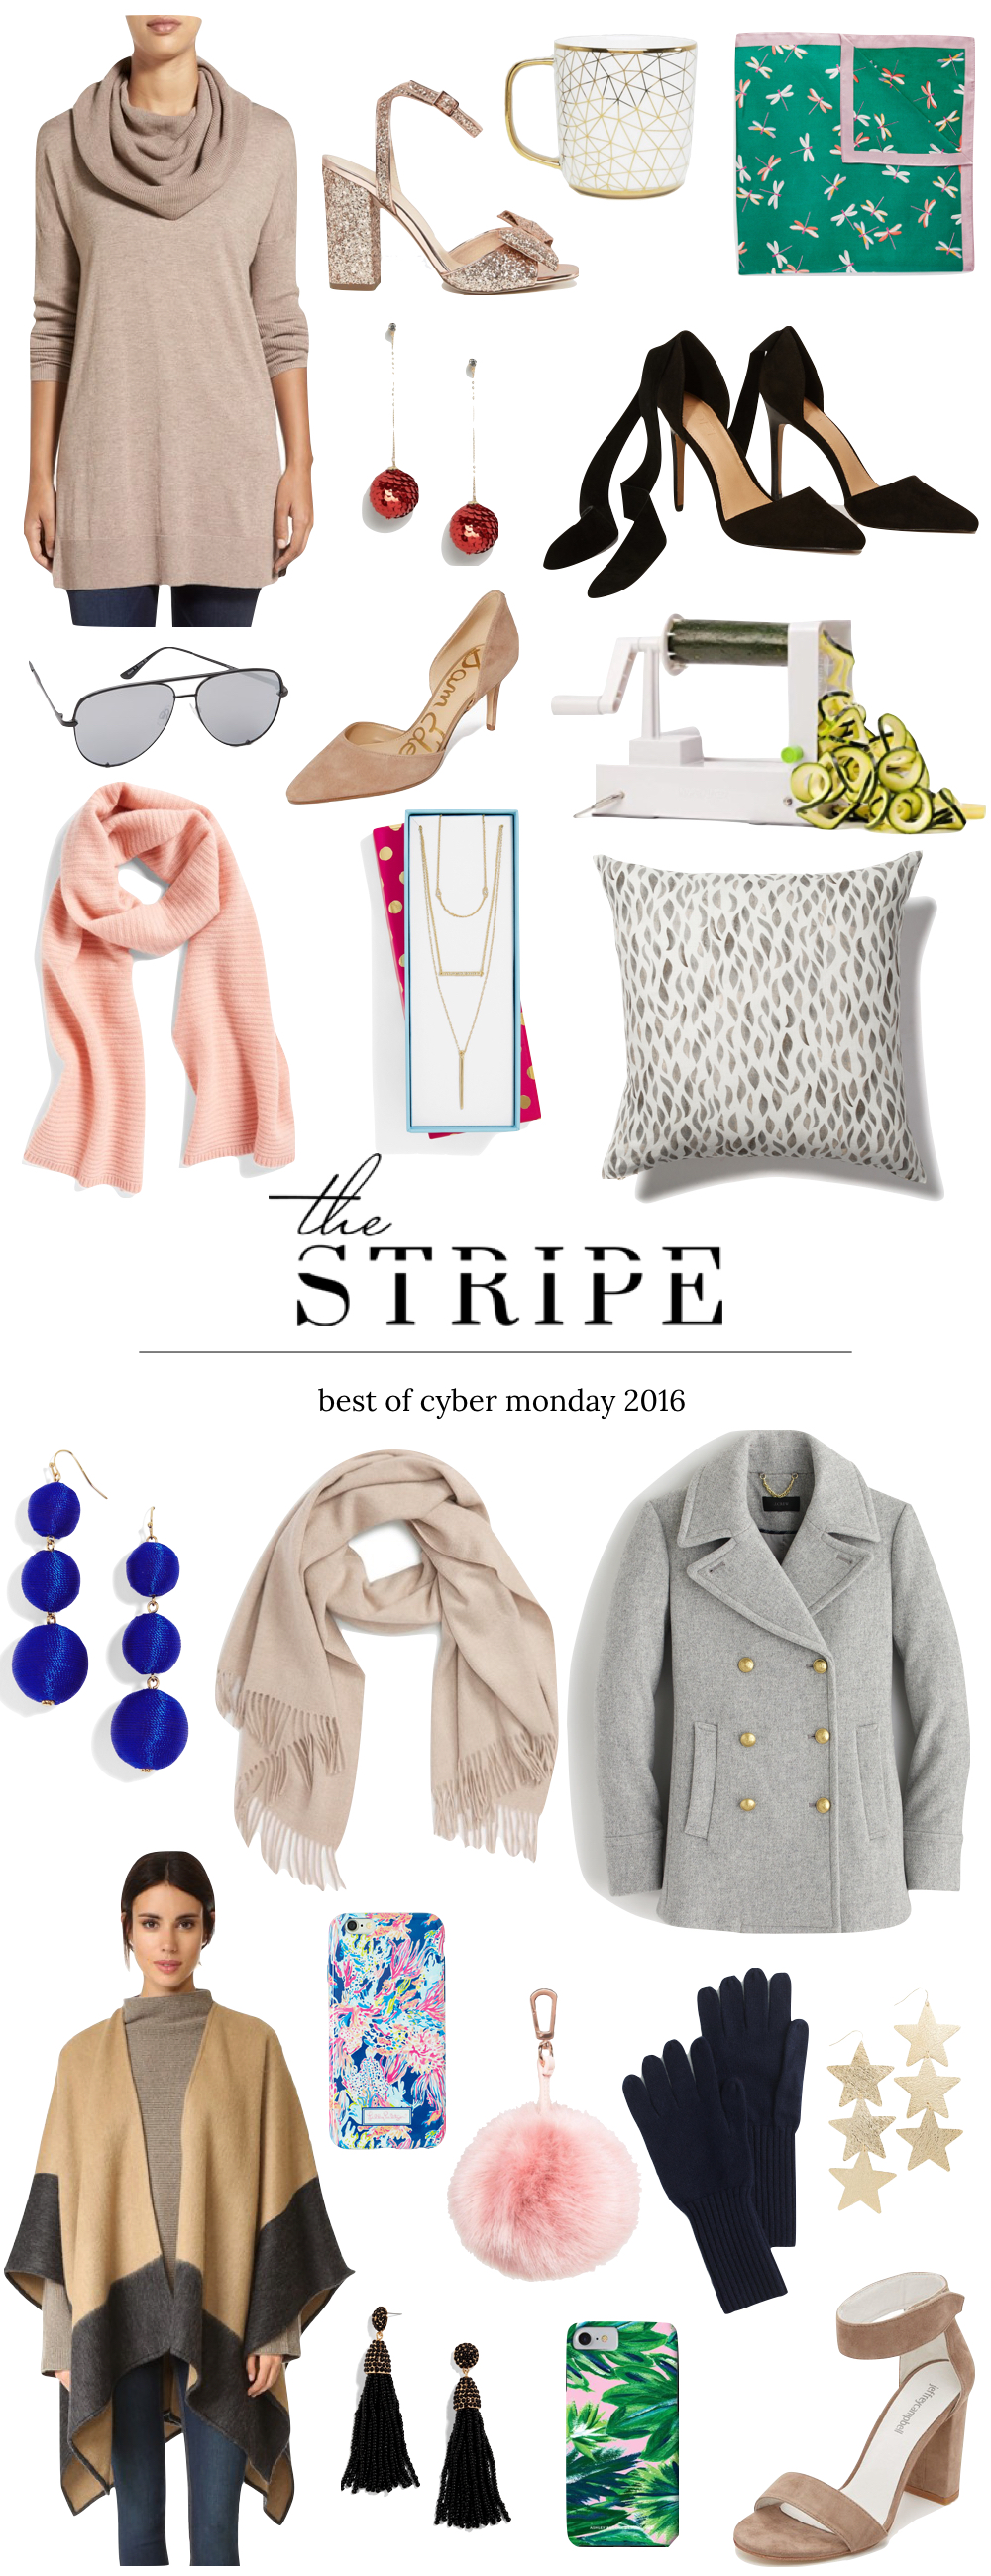 Best Cyber Monday Deals 2016 | The Stripe.